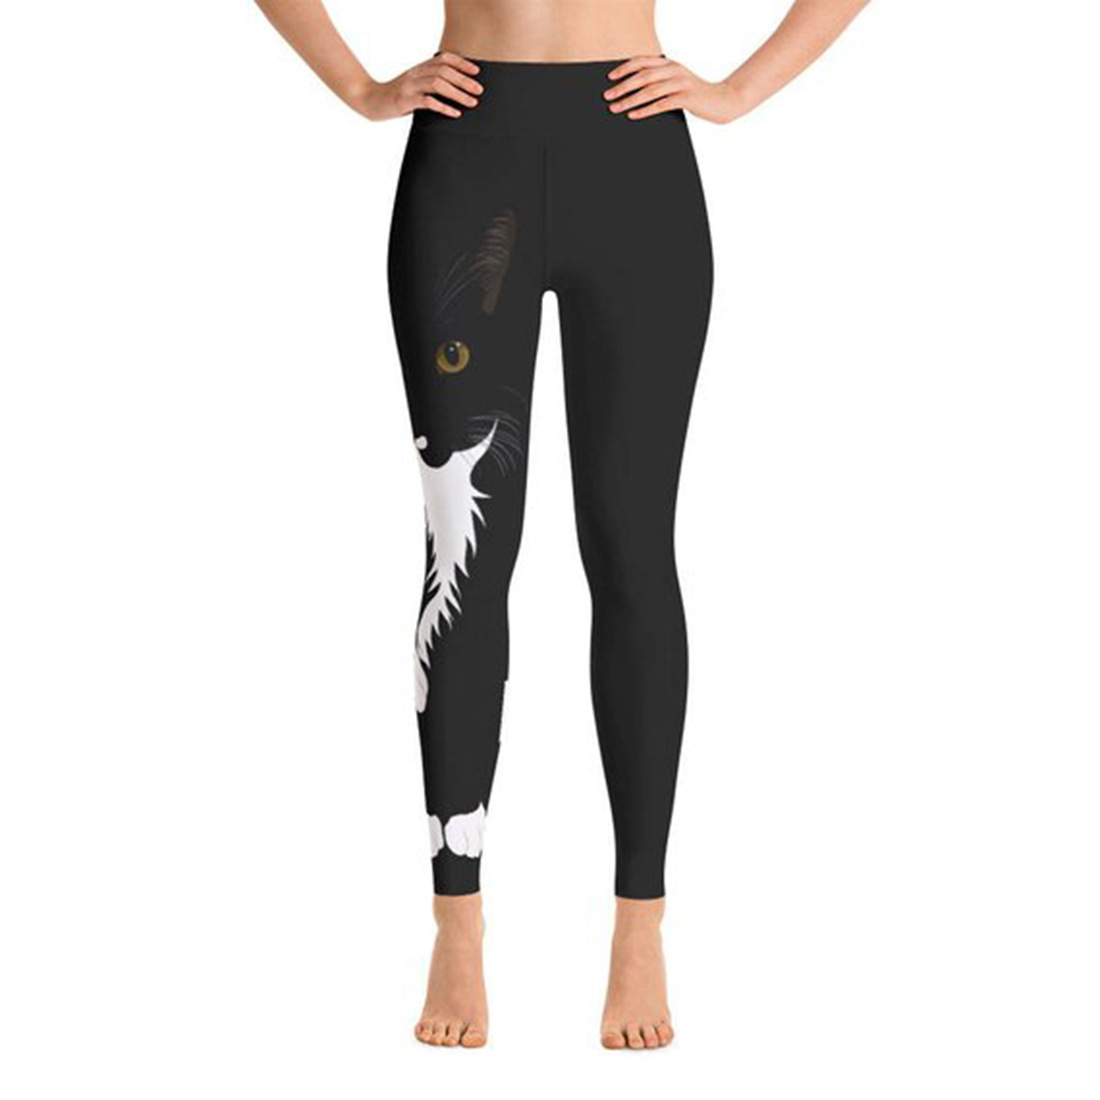 2019 Summer New Products Cross Border Black Cat Capri Pants Women's Fashion & Sports Leggings JK1-038